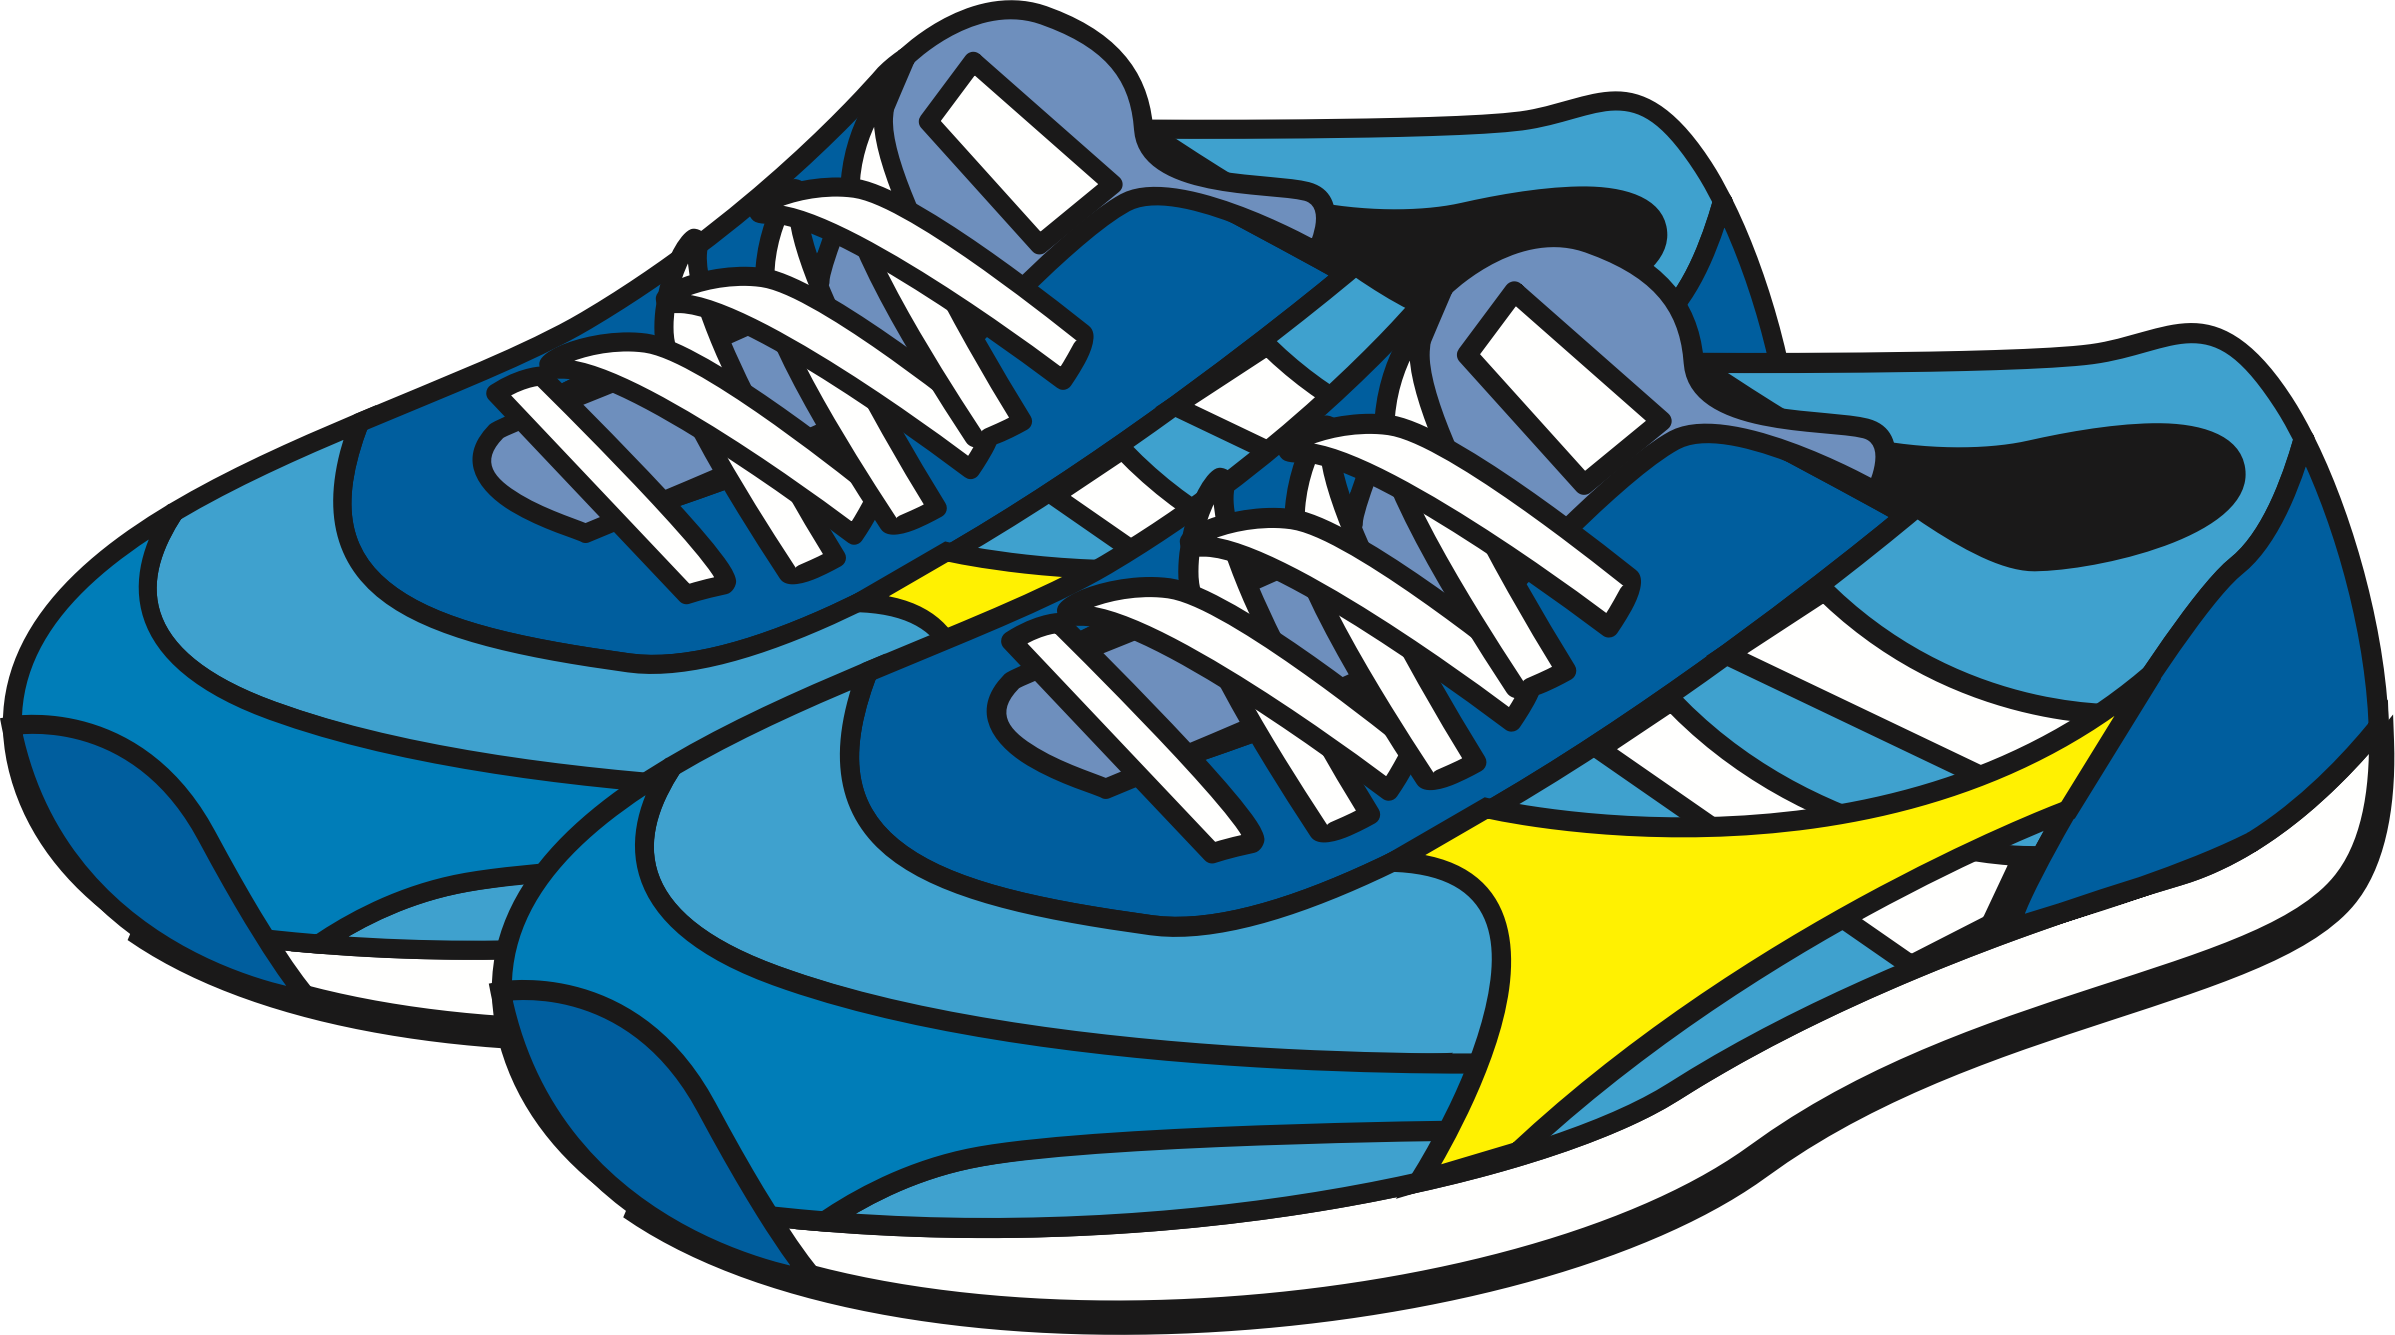 Clipart running shoe png. Jogging shoes icons free